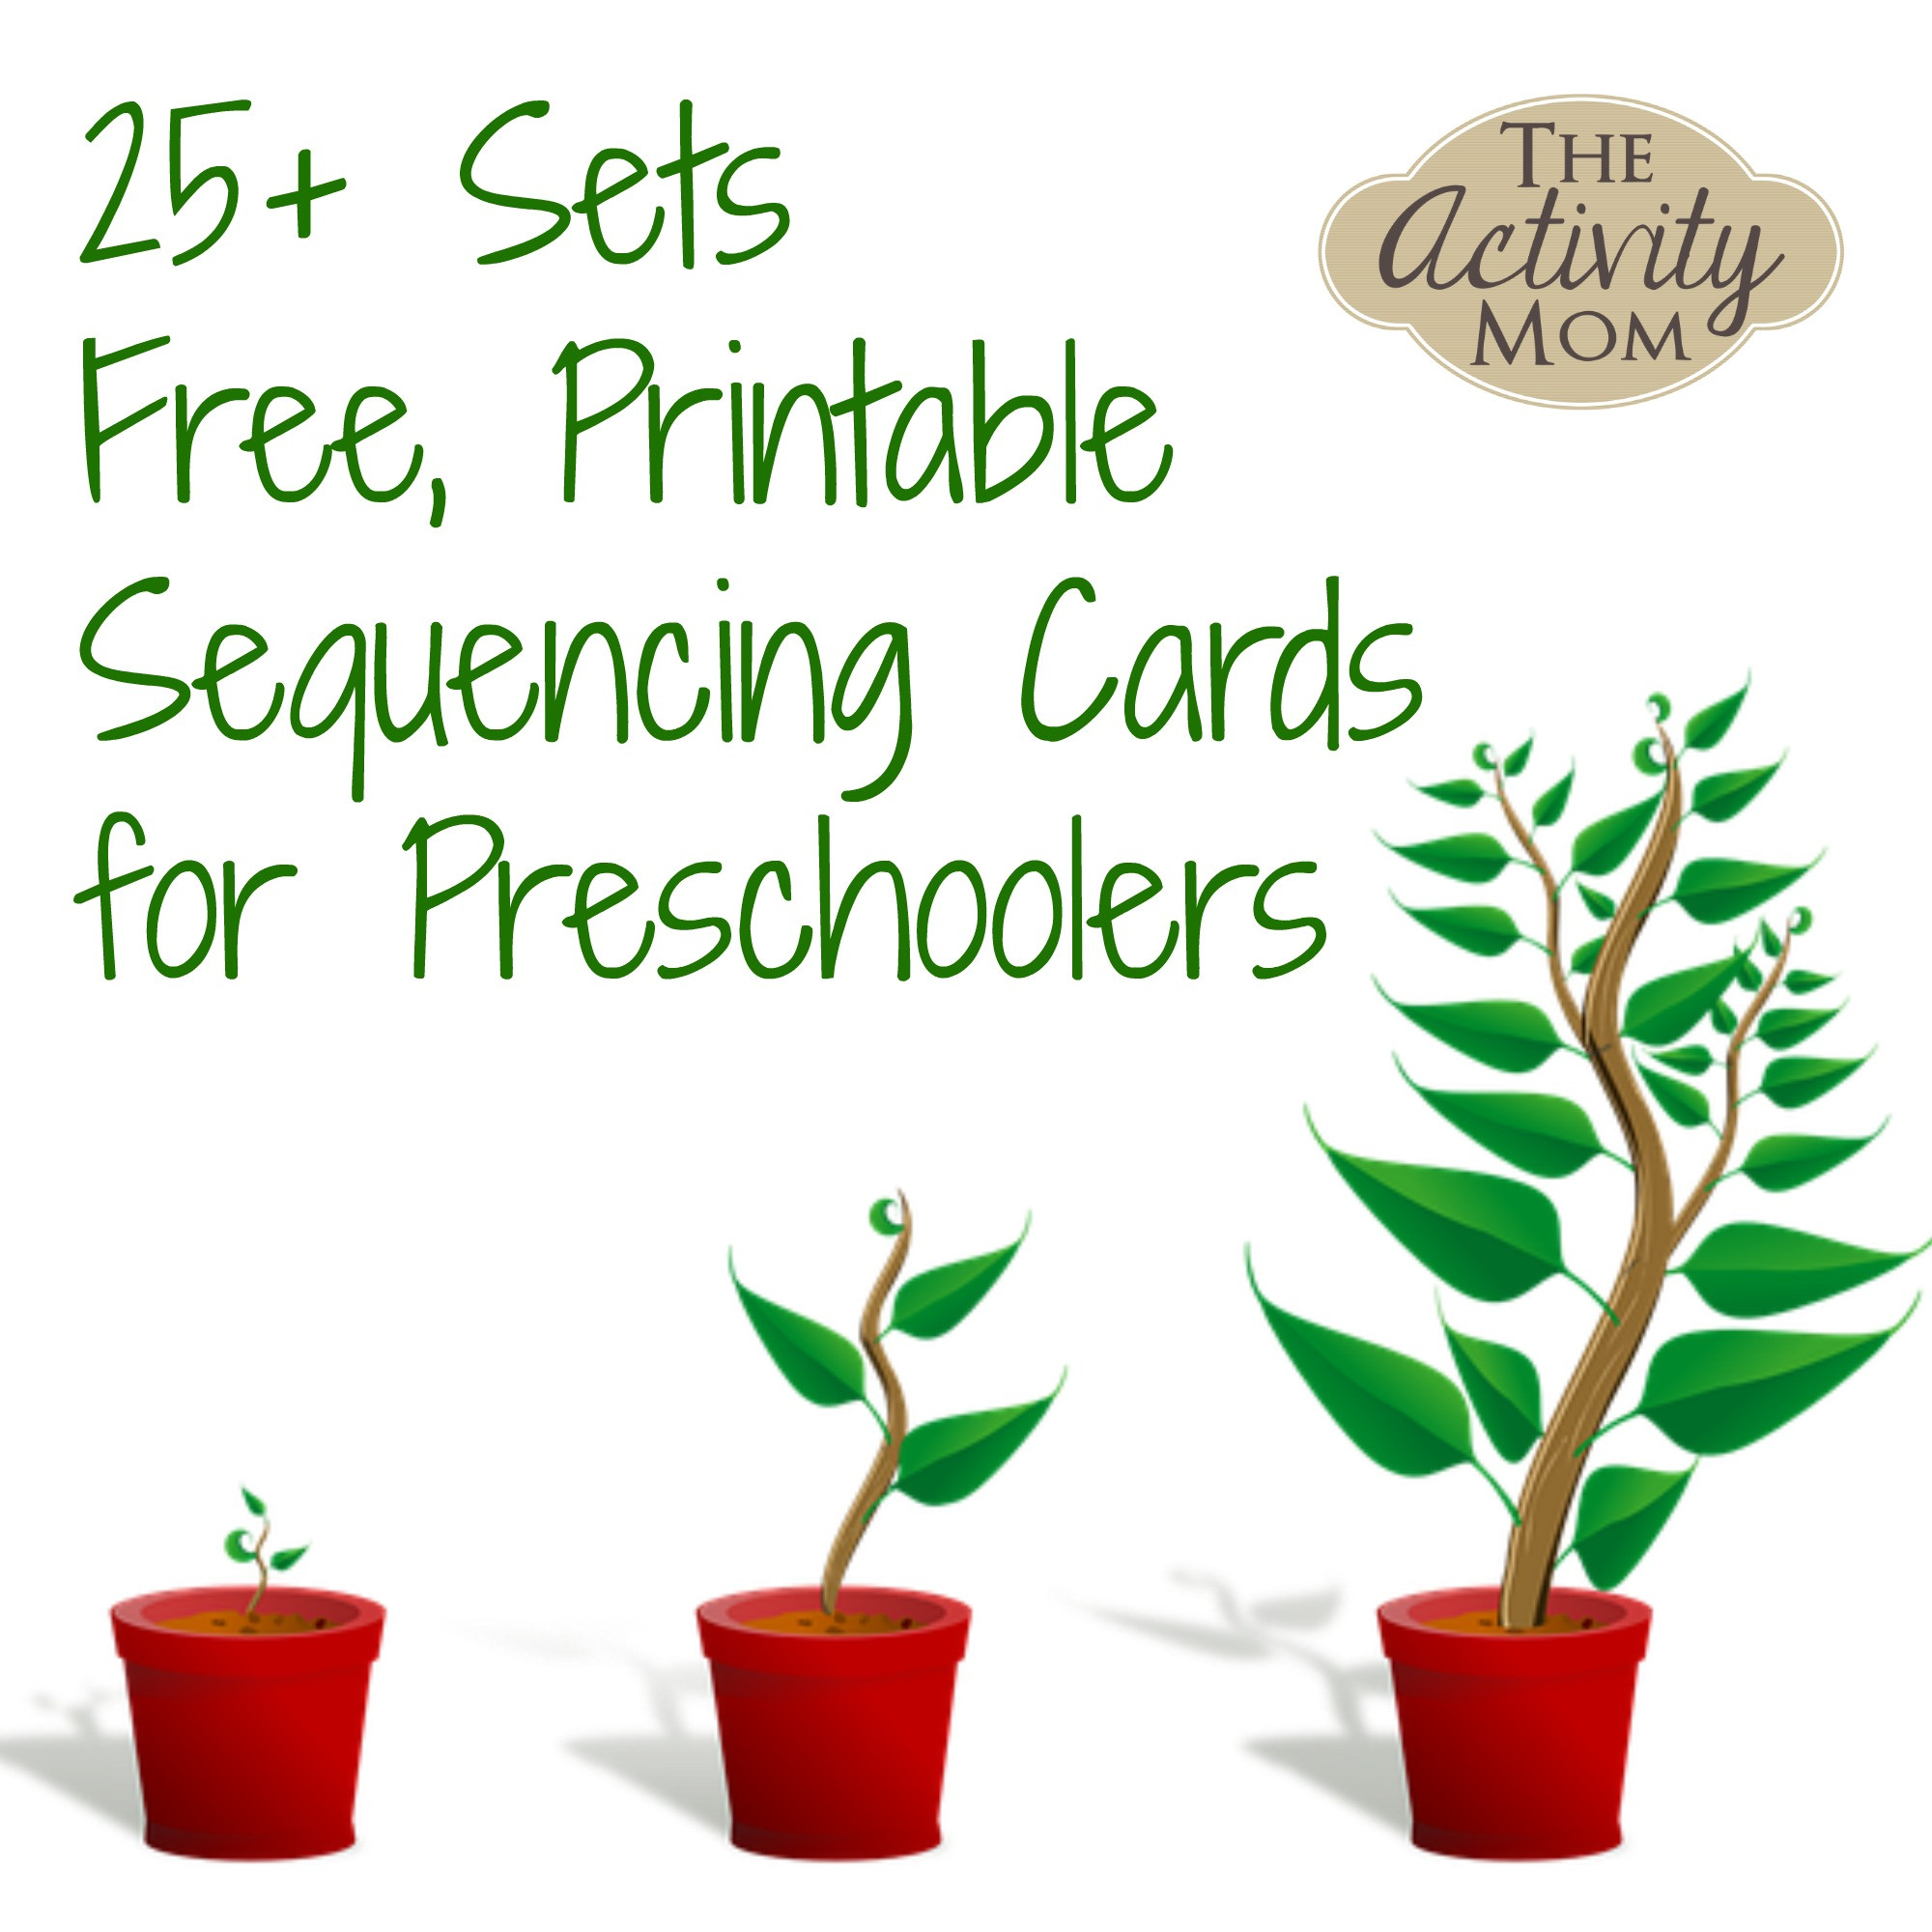 Preschool Sequencing Worksheets the Activity Mom Sequencing Cards Printable the Activity Mom